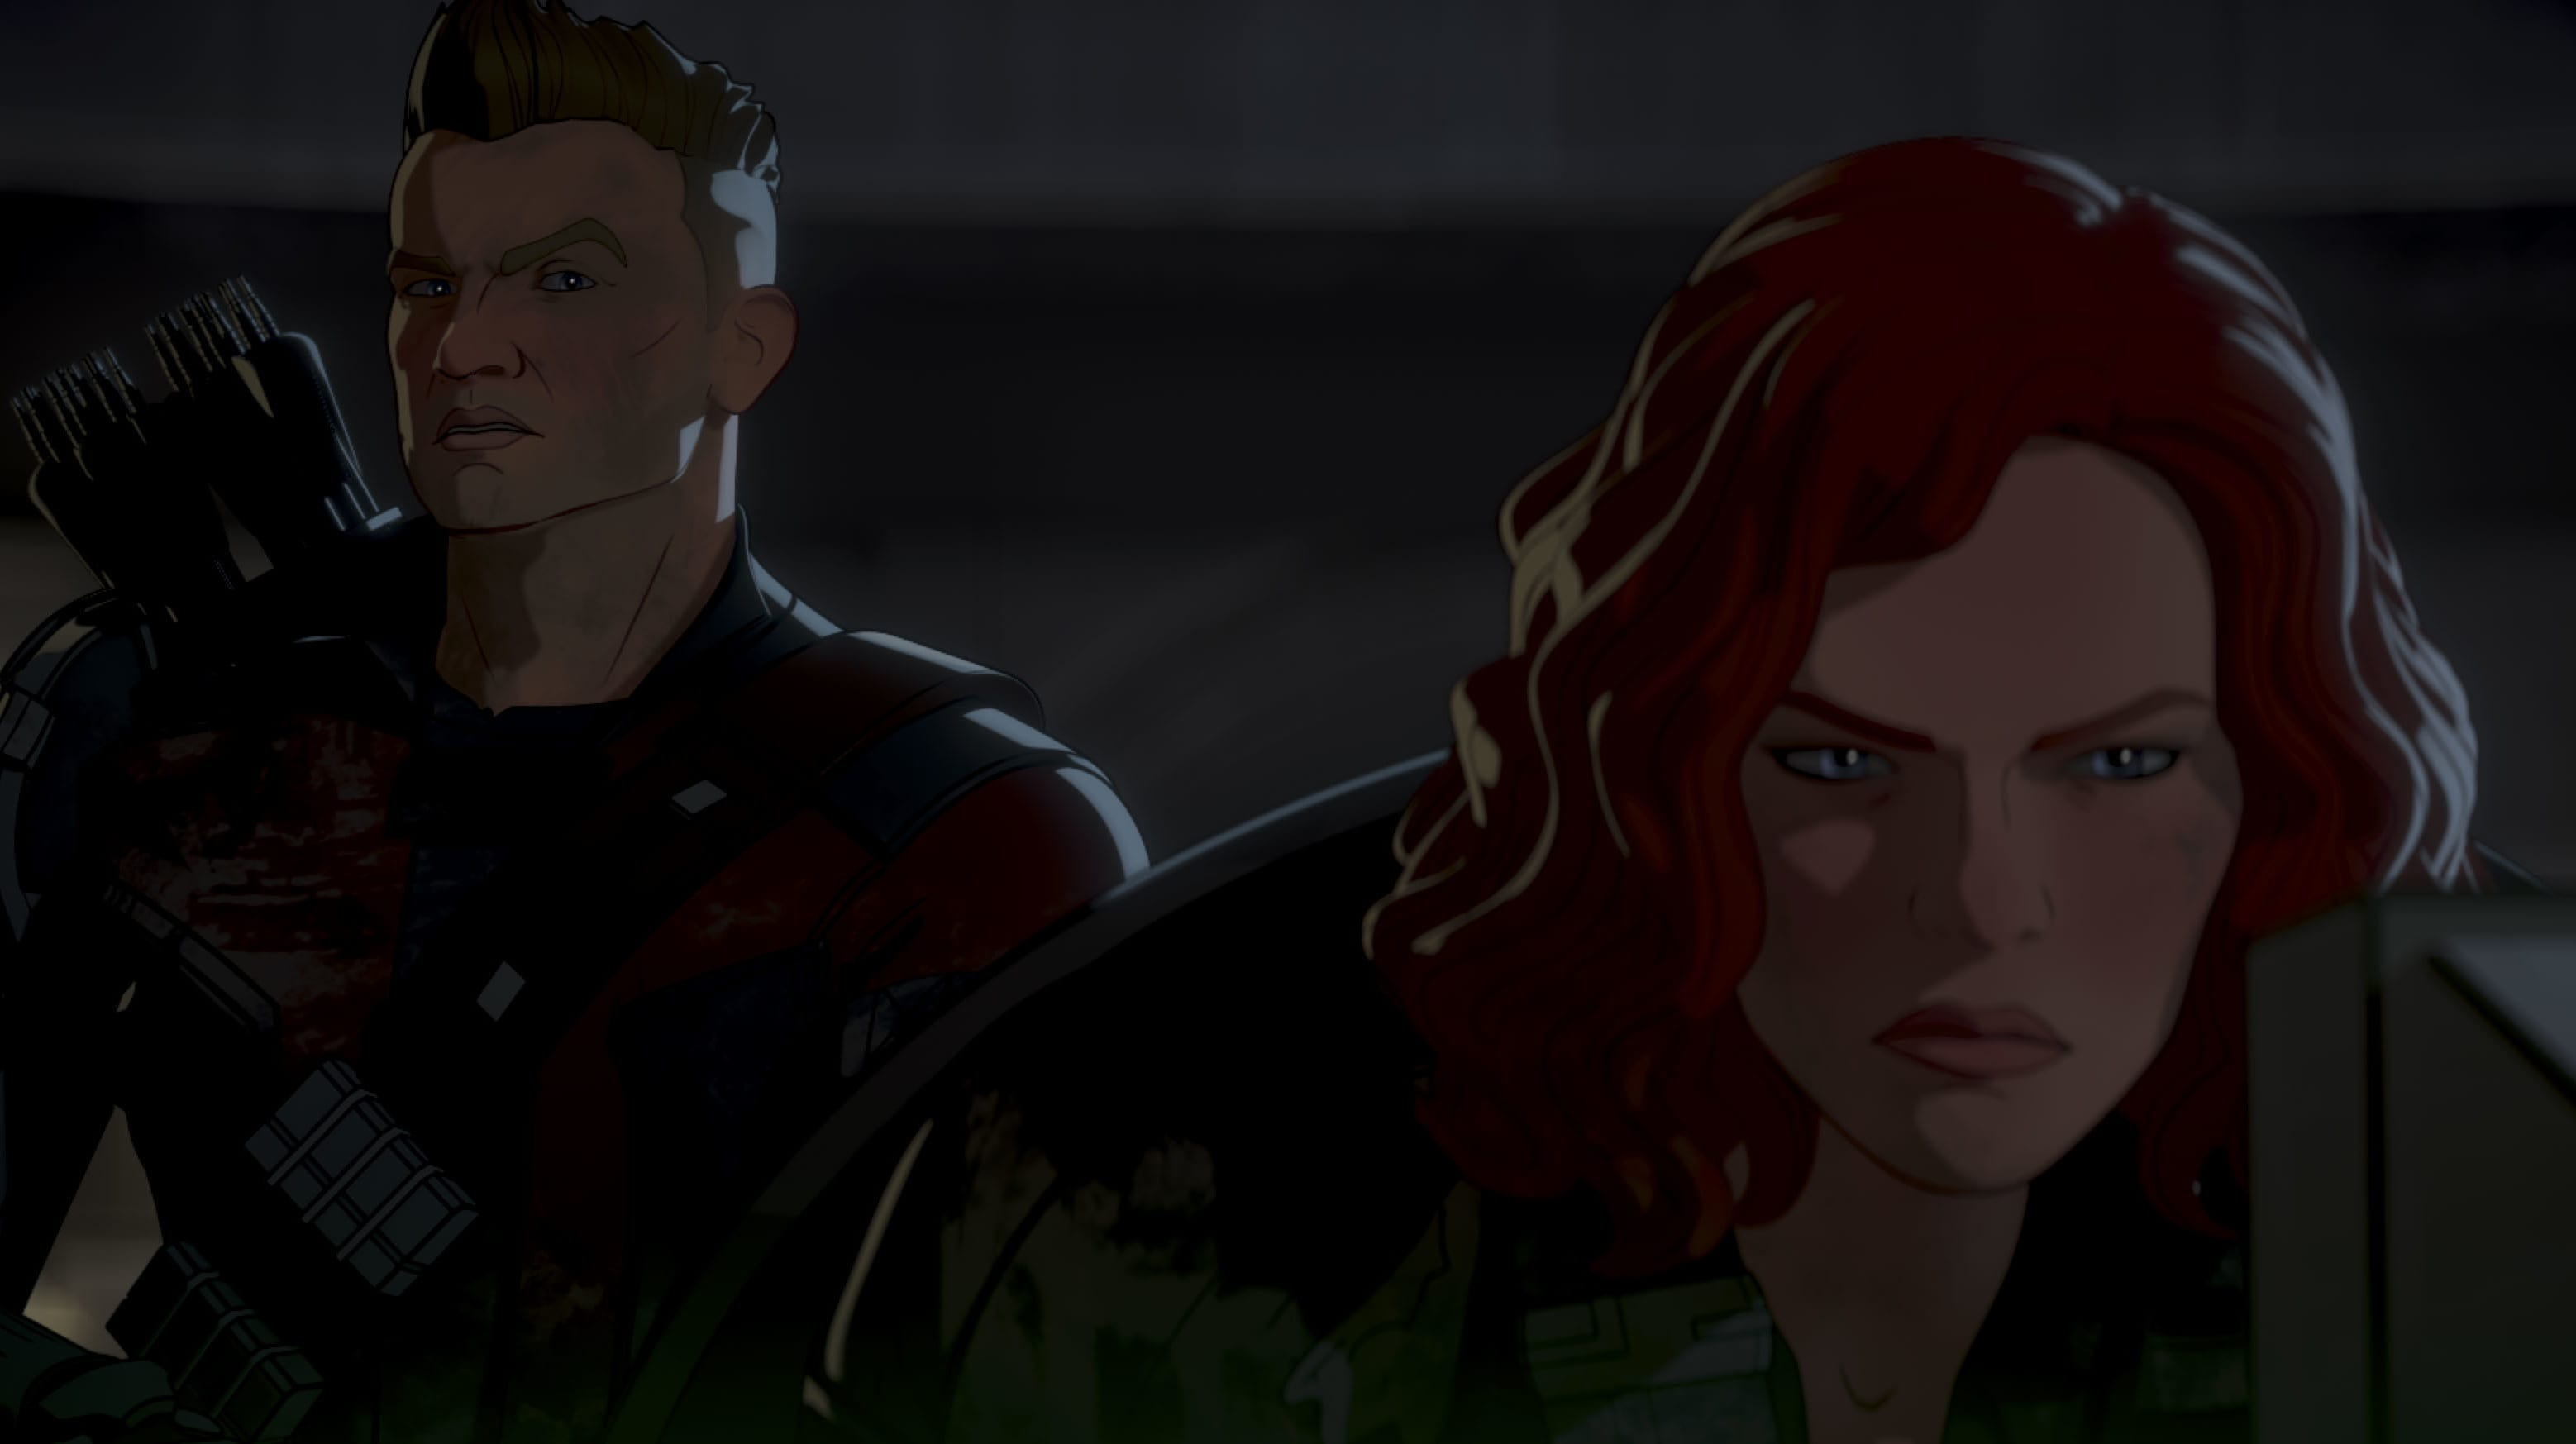 Post-Apocalyptic Hawkeye and Post-Apocalyptic Black Widow in Marvel Studios' WHAT IF...? exclusively on Disney+. ©Marvel Studios 2021. All Rights Reserved.